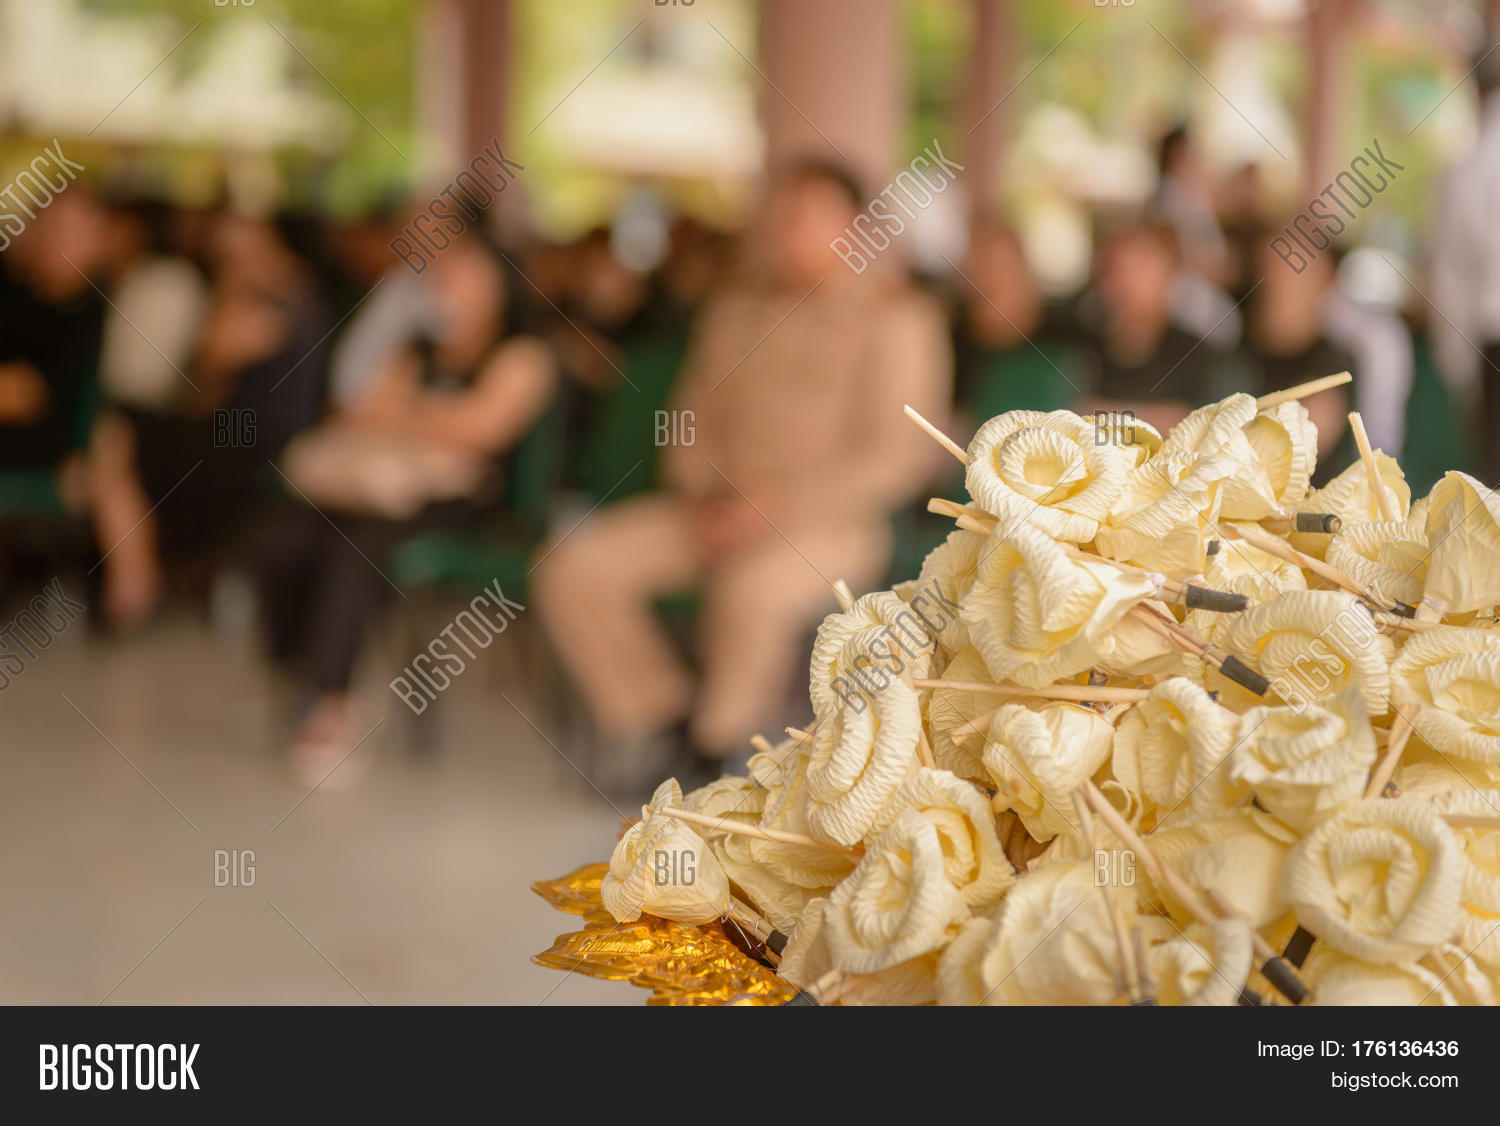 Sandalwood flowers artificial image photo bigstock sandalwood flowers or artificial flowers or wood cremation flower kind of wood flower to be placed izmirmasajfo Images